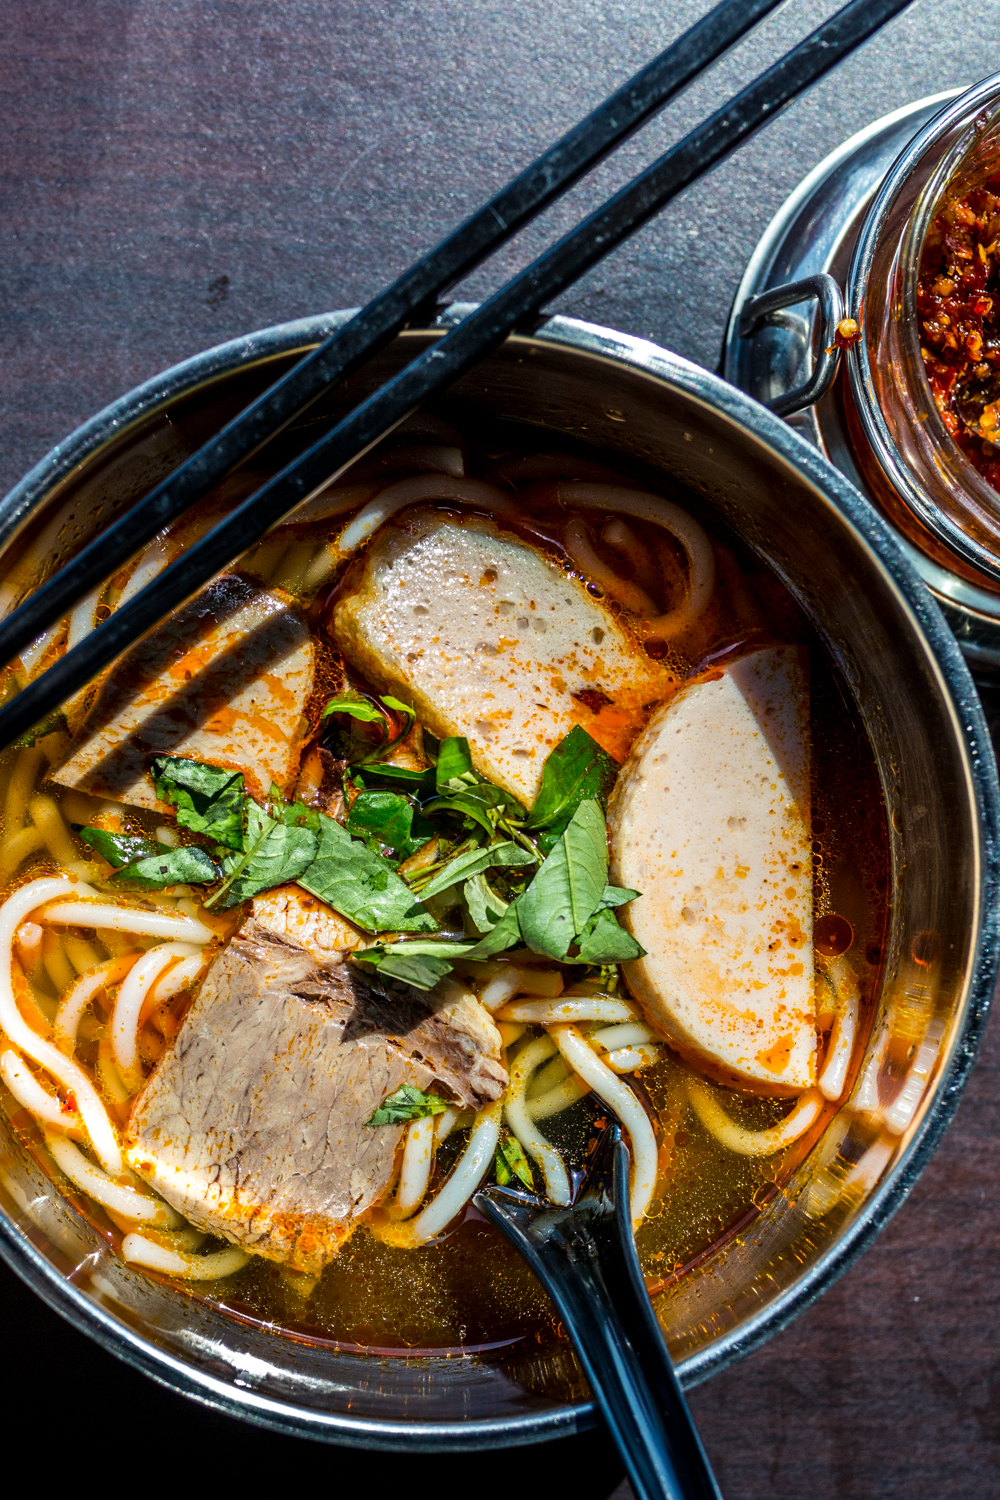 Spicy Beef Noodle Soup: rice noodles in a spicy lemongrass broth with beef slices, Vietnamese ham, soft tendon, cilantro, green onions, and white onions / Image: Catherine Viox{ }// Published: 9.28.19